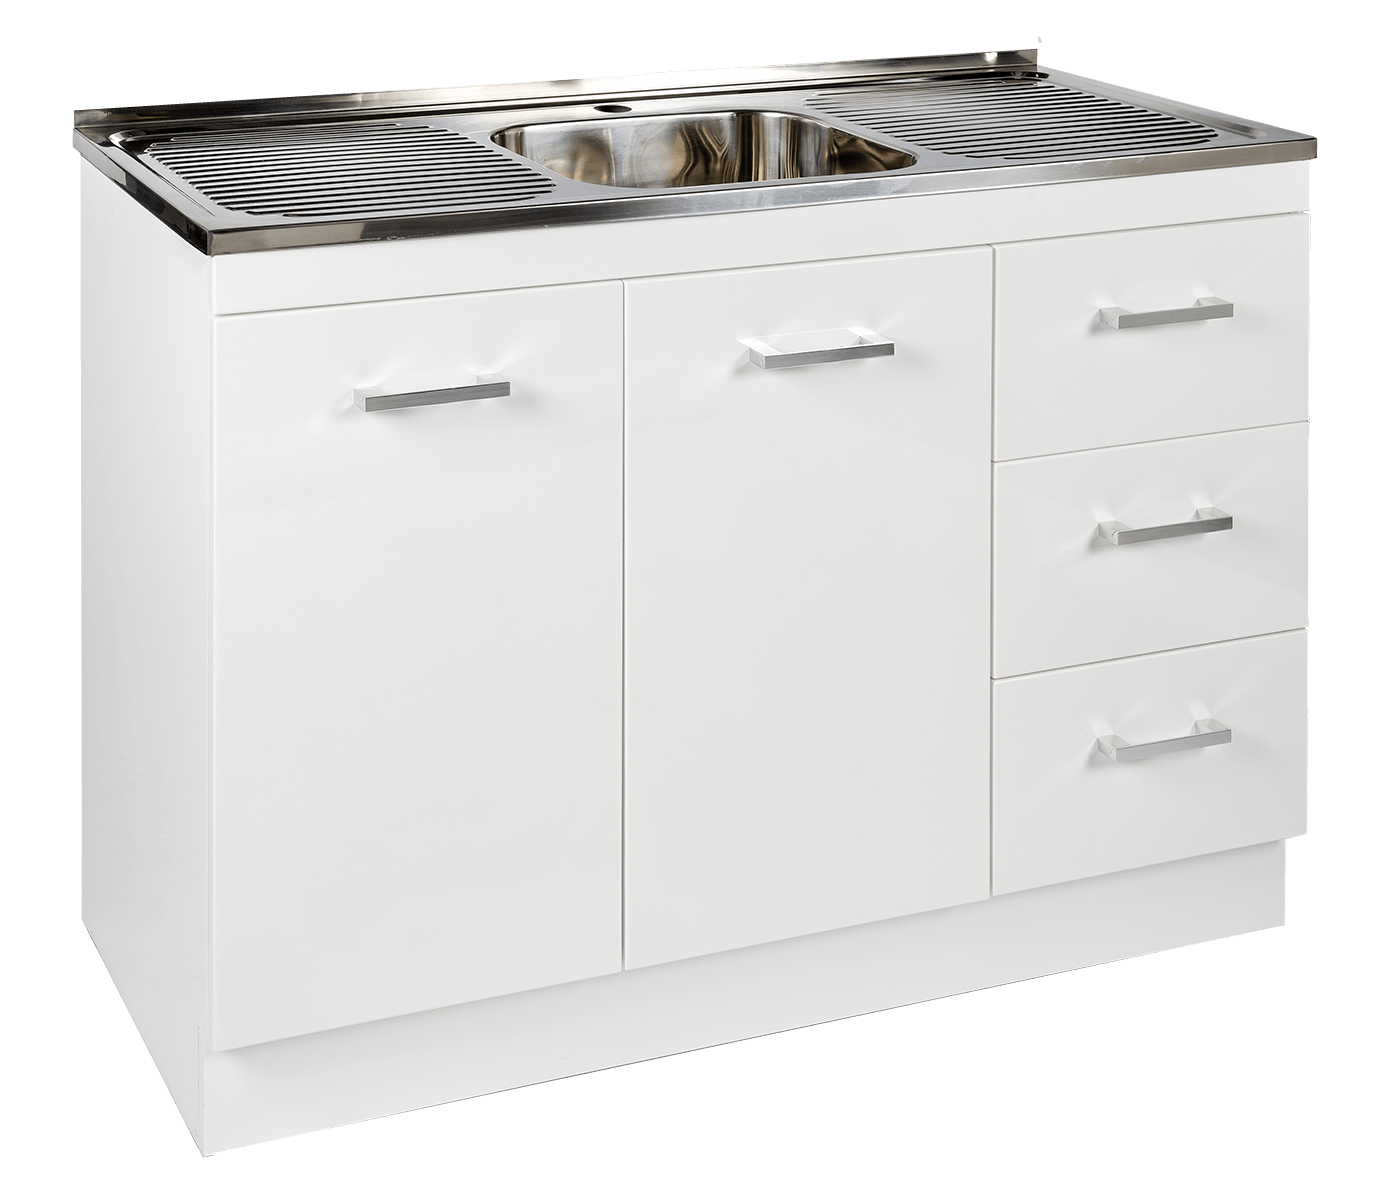 Kitchenette Sink Cabinet